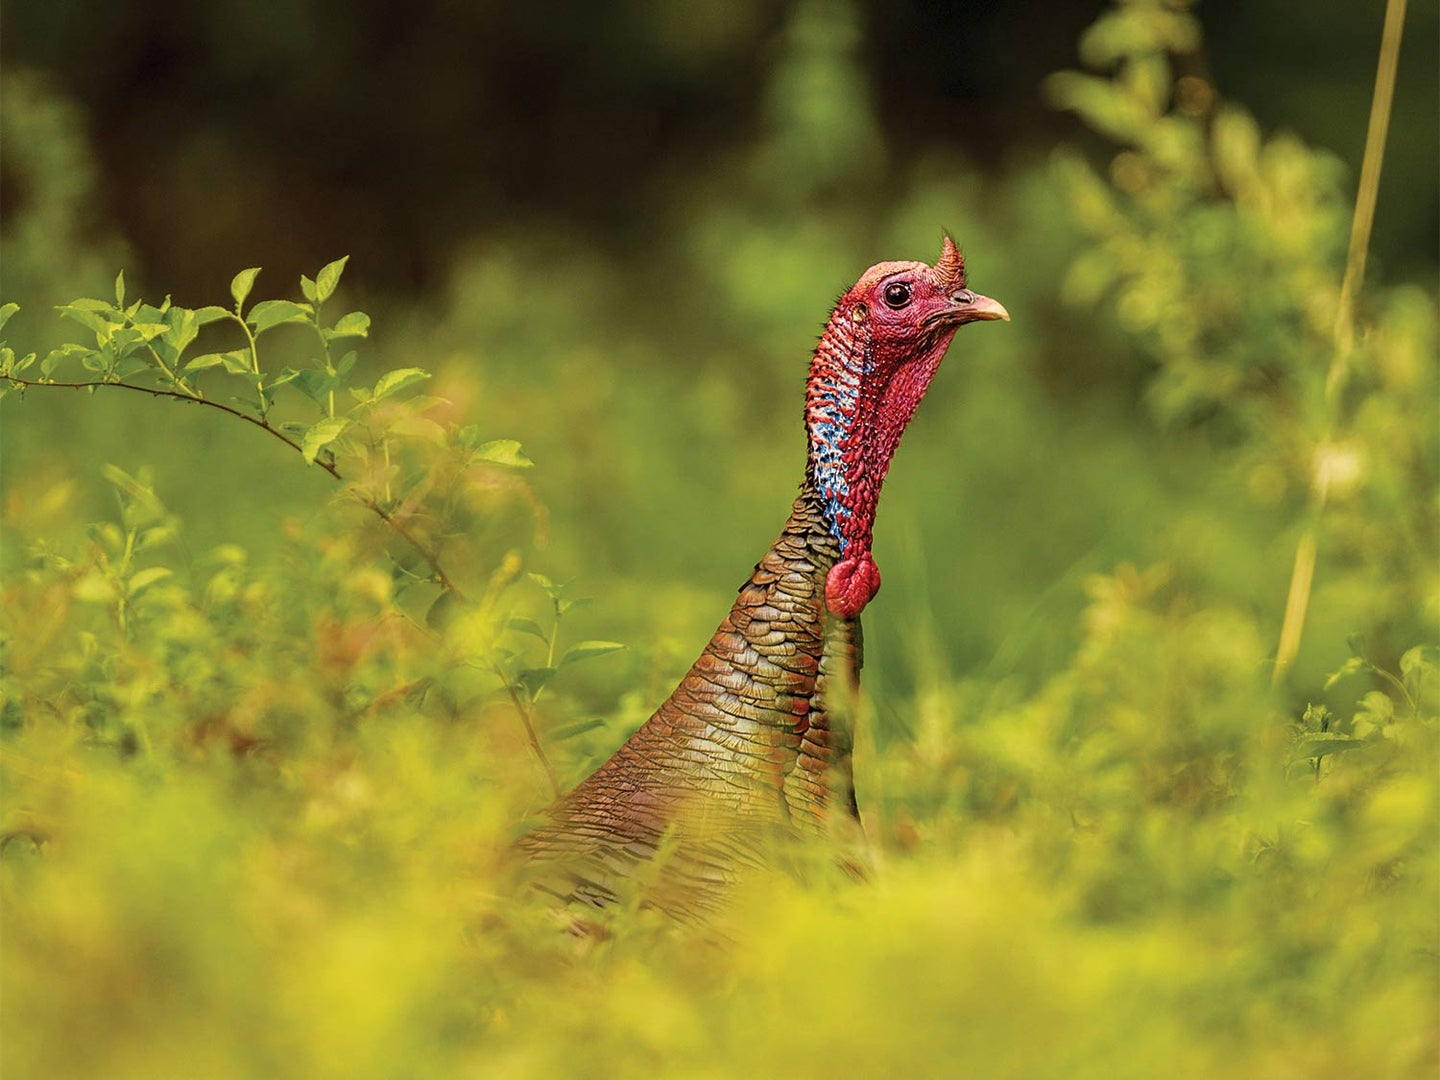 A turkey in a weed and grass field.